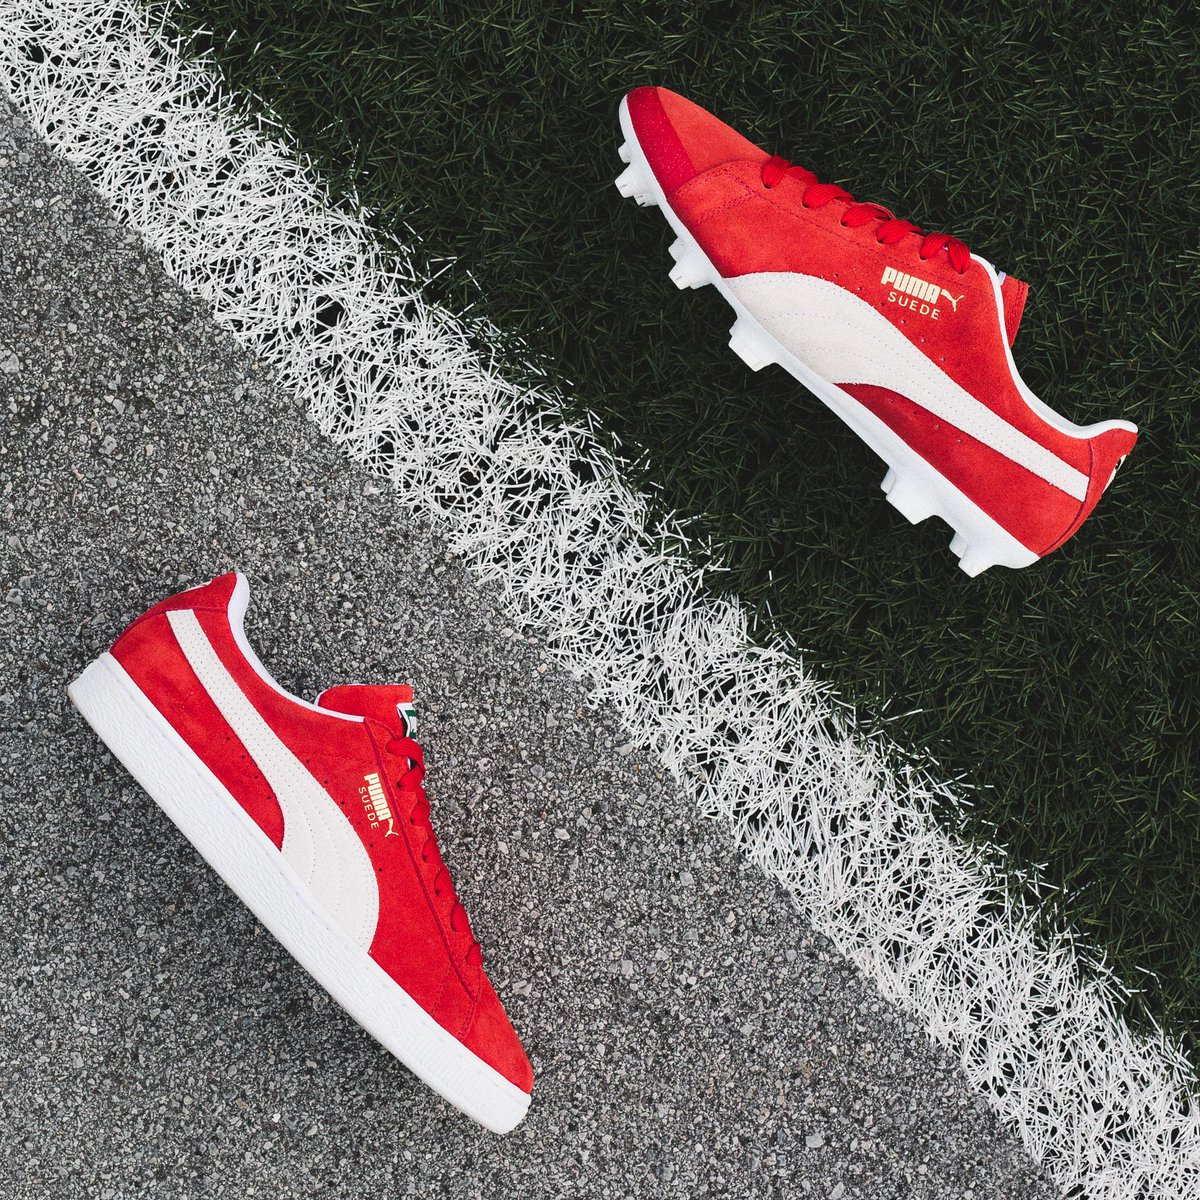 ceda4af9b Celebrating the 50th Anniversary of the iconic Suede is the FUTURE Suede 50  Pack. Exclusively available at: http://eu.puma.com/de/de/suede-50 .